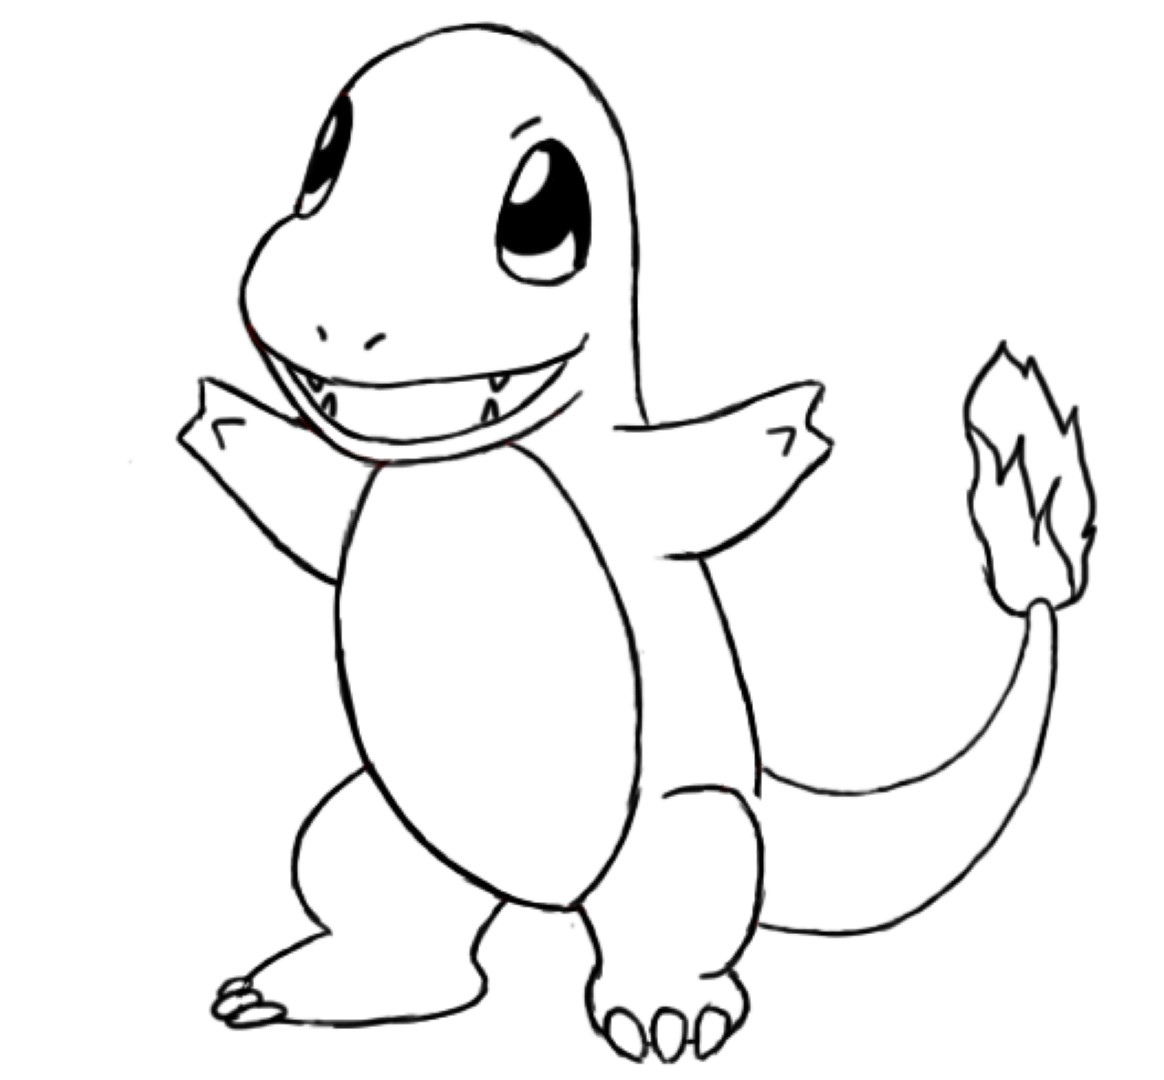 charmander bulbasaur squirtle coloring pages - photo#34